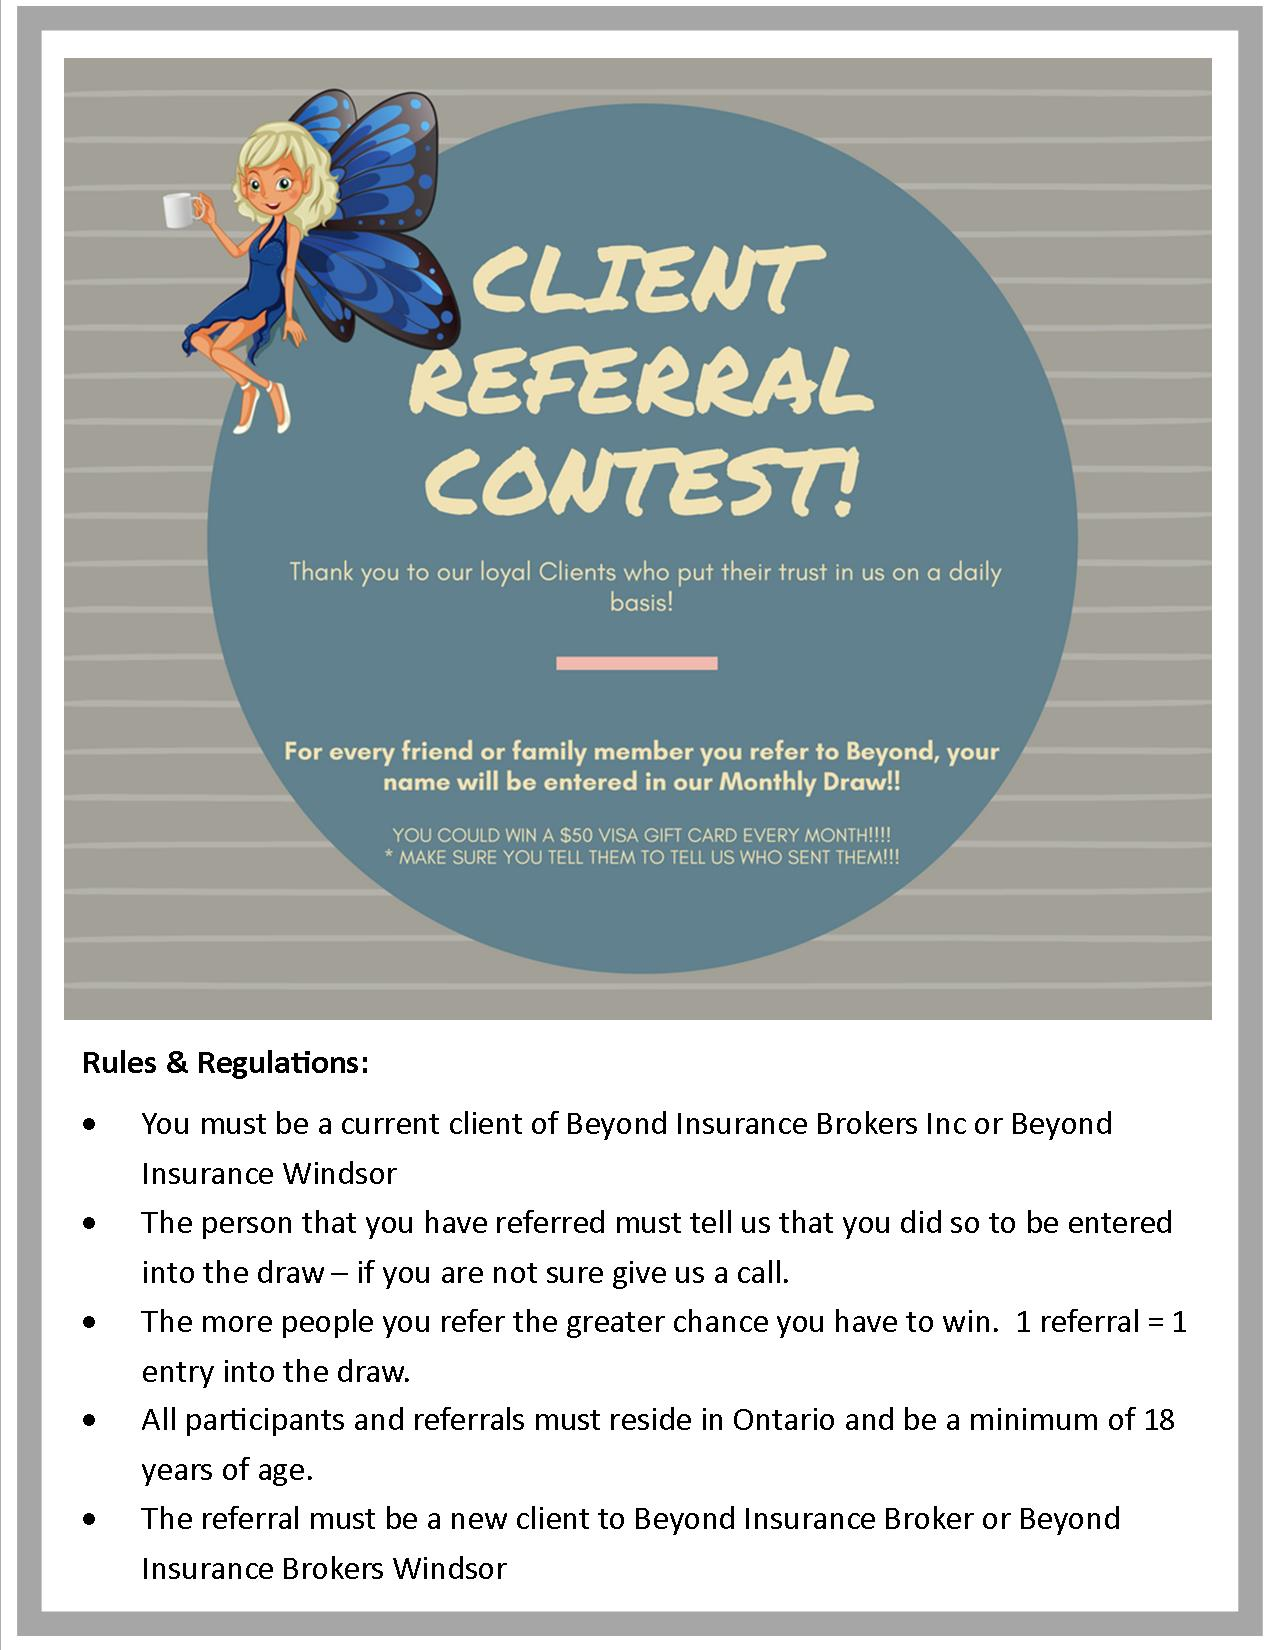 Best Car Insurance Ontario >> Referral Contest... - Beyond Insurance Brokers